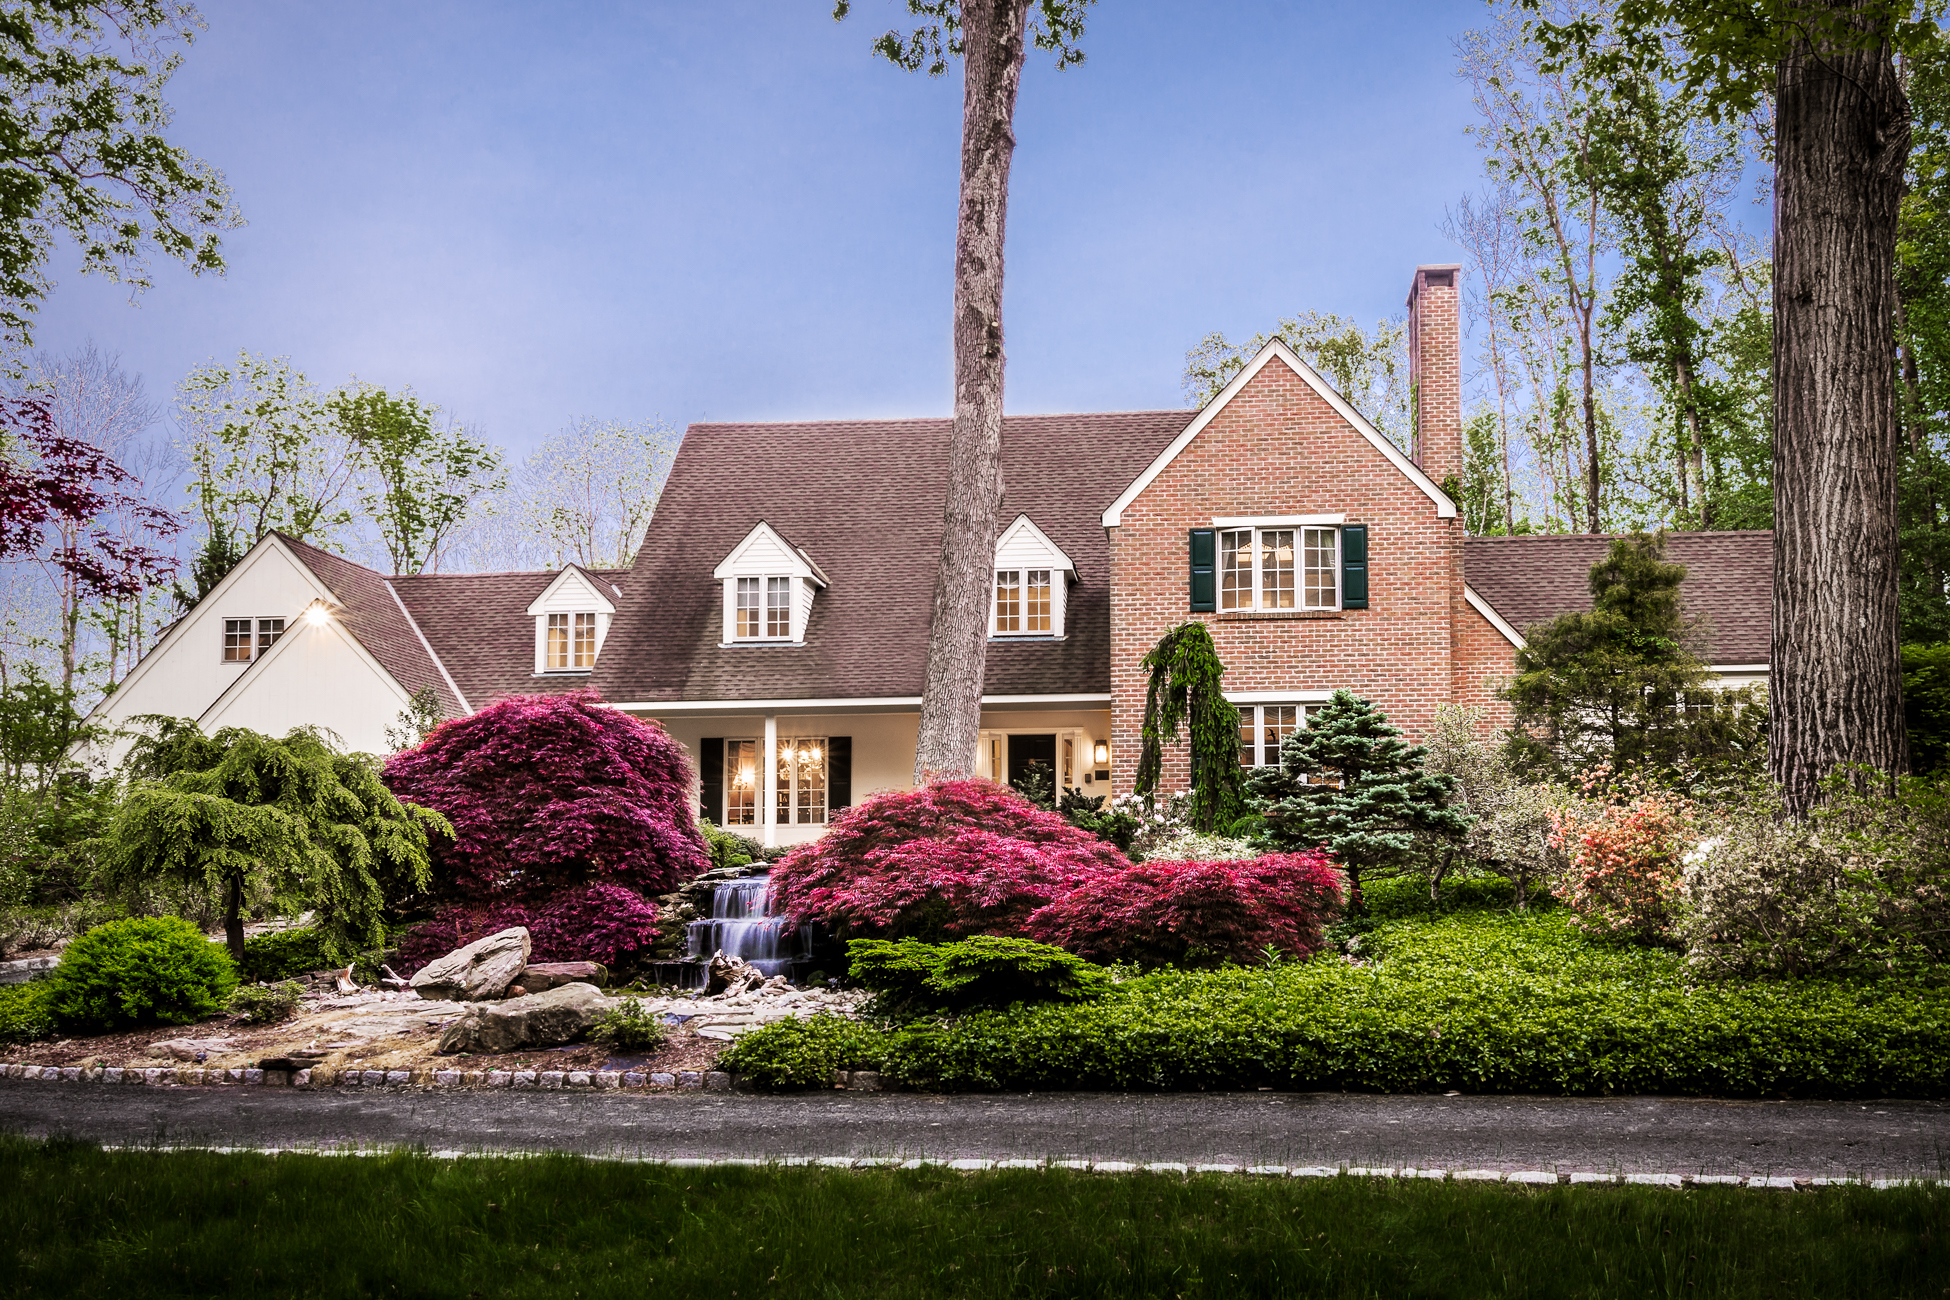 Single Family Home for Sale at A Majestic Setting for Distinctive Lawrence Estate - Lawrence Township 4497 Province Line Road Princeton, New Jersey 08540 United States